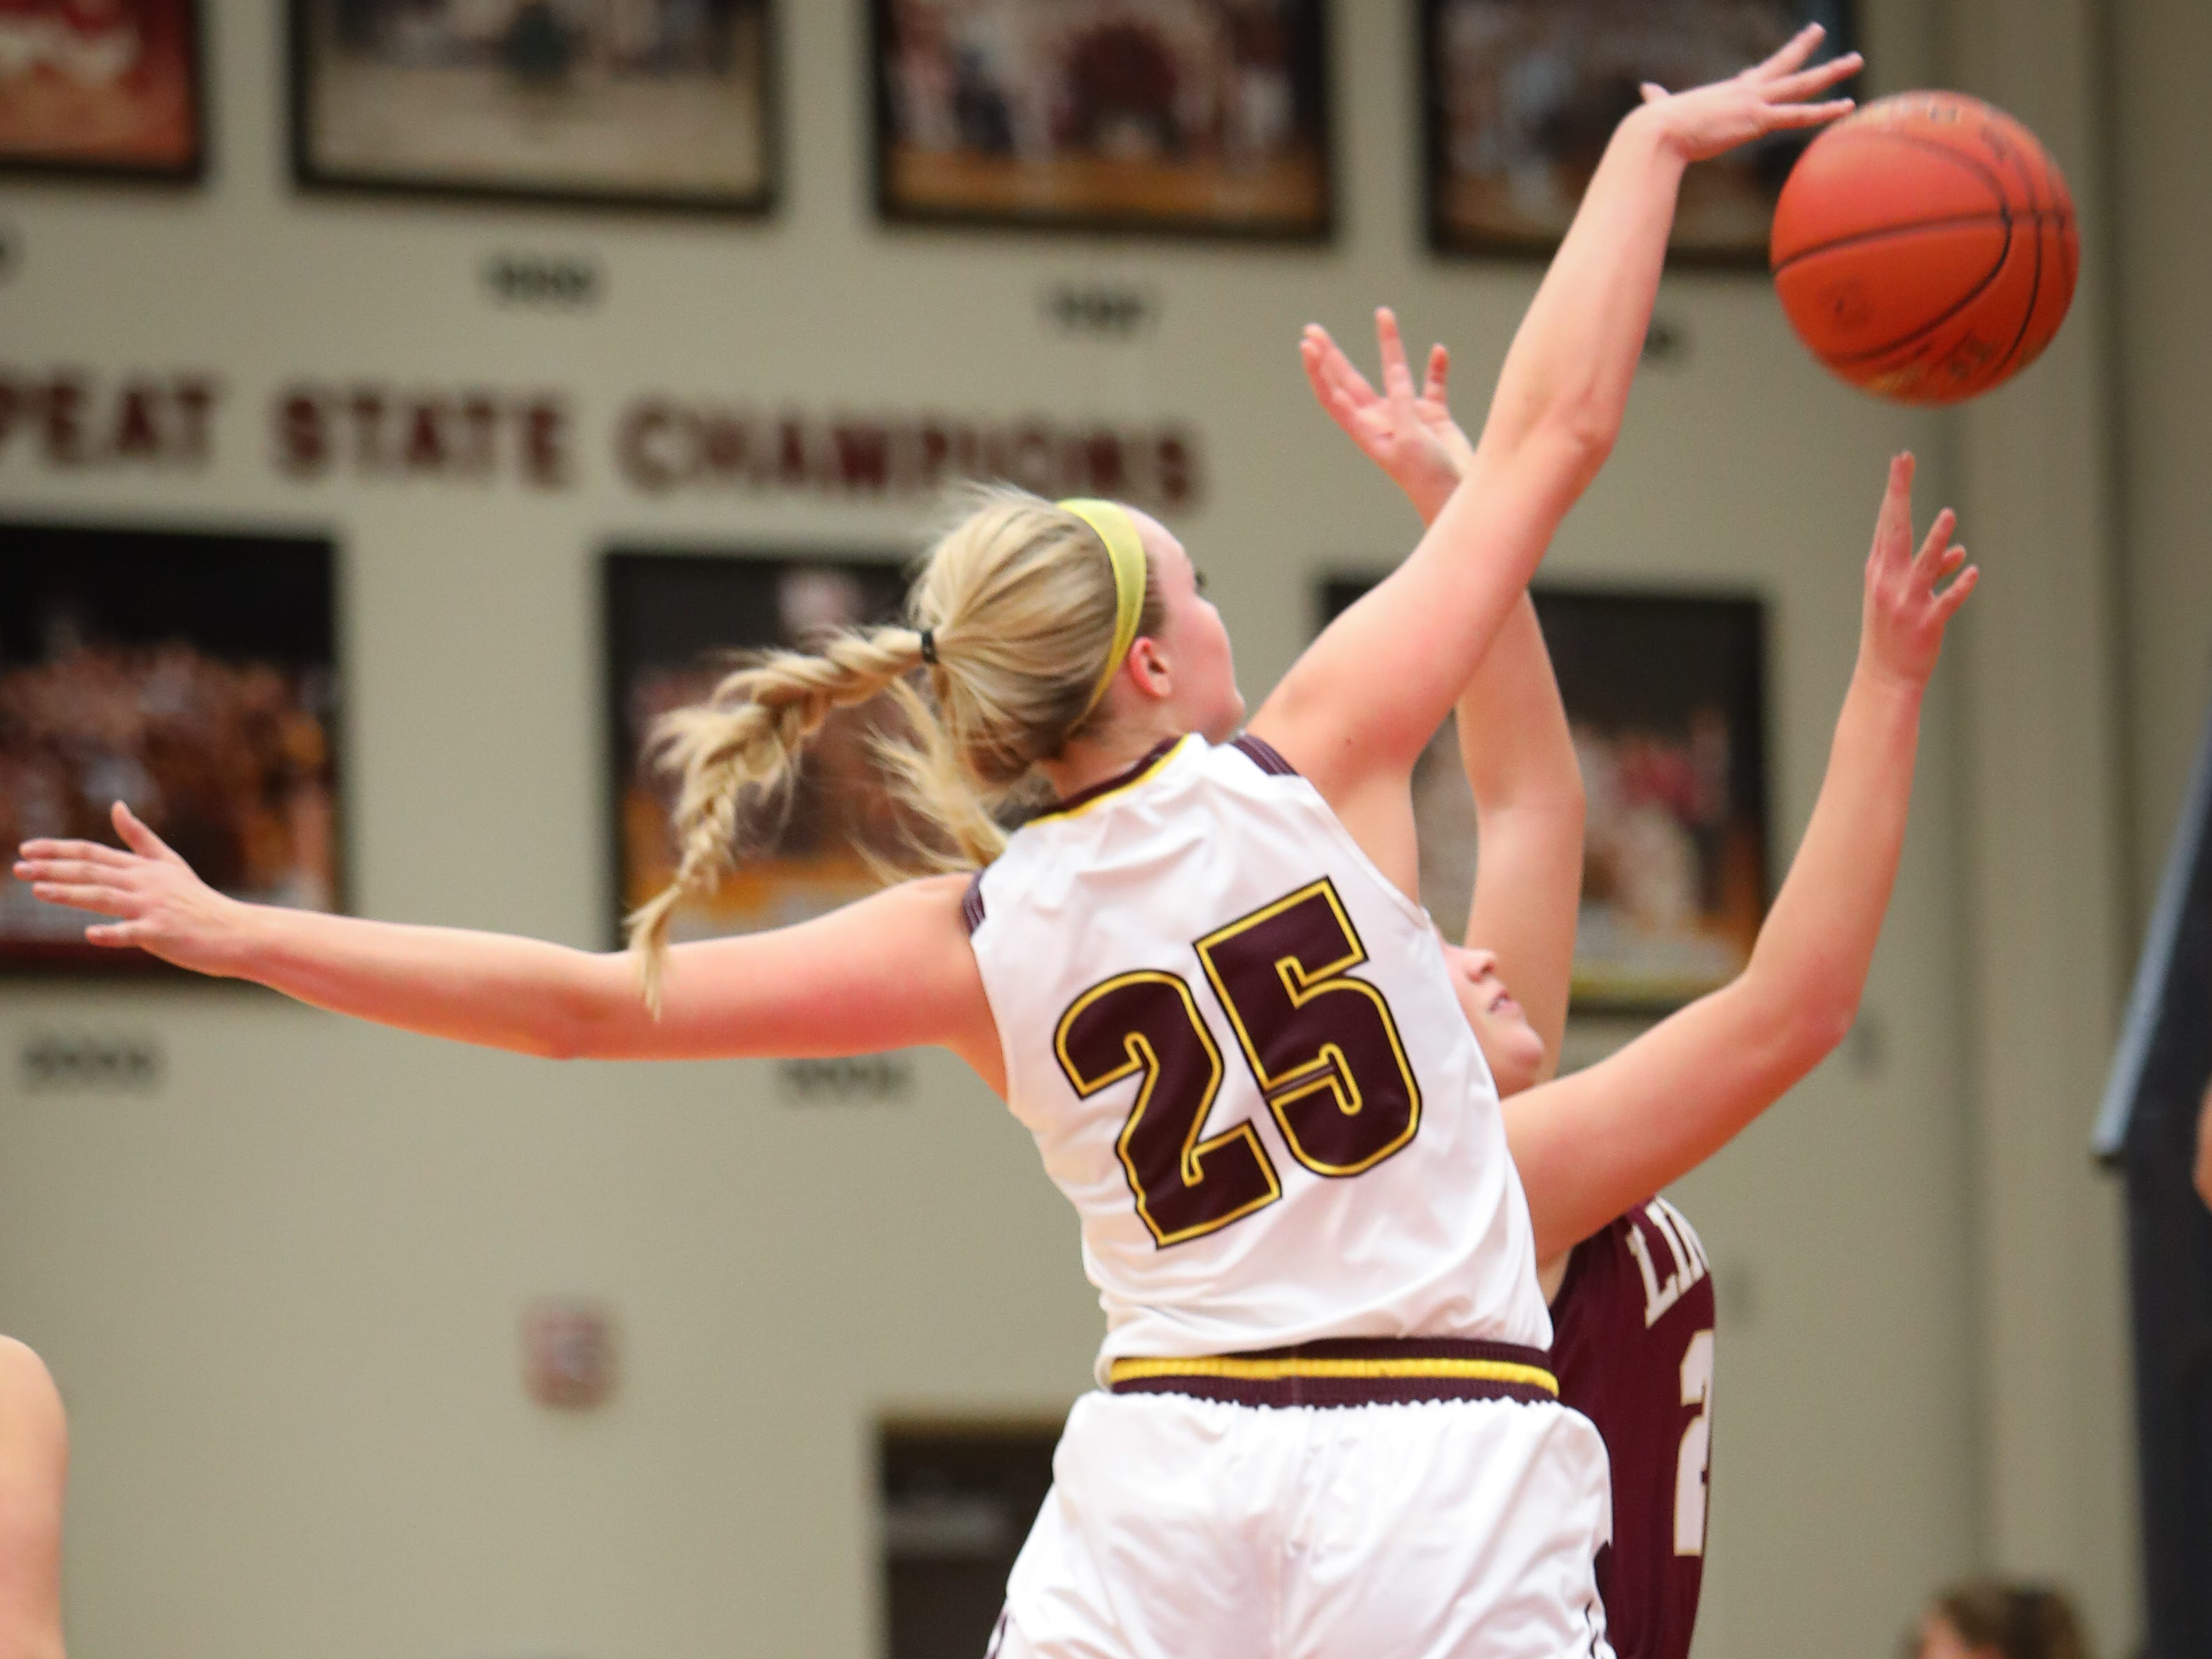 Ankeny senior Sara McCullough blocks the ball during a girls high school basketball game between the Lincoln Railsplitters and the Ankeny Hawks at Ankeny High School on Dec. 4, 2018 in Ankeny, Iowa.